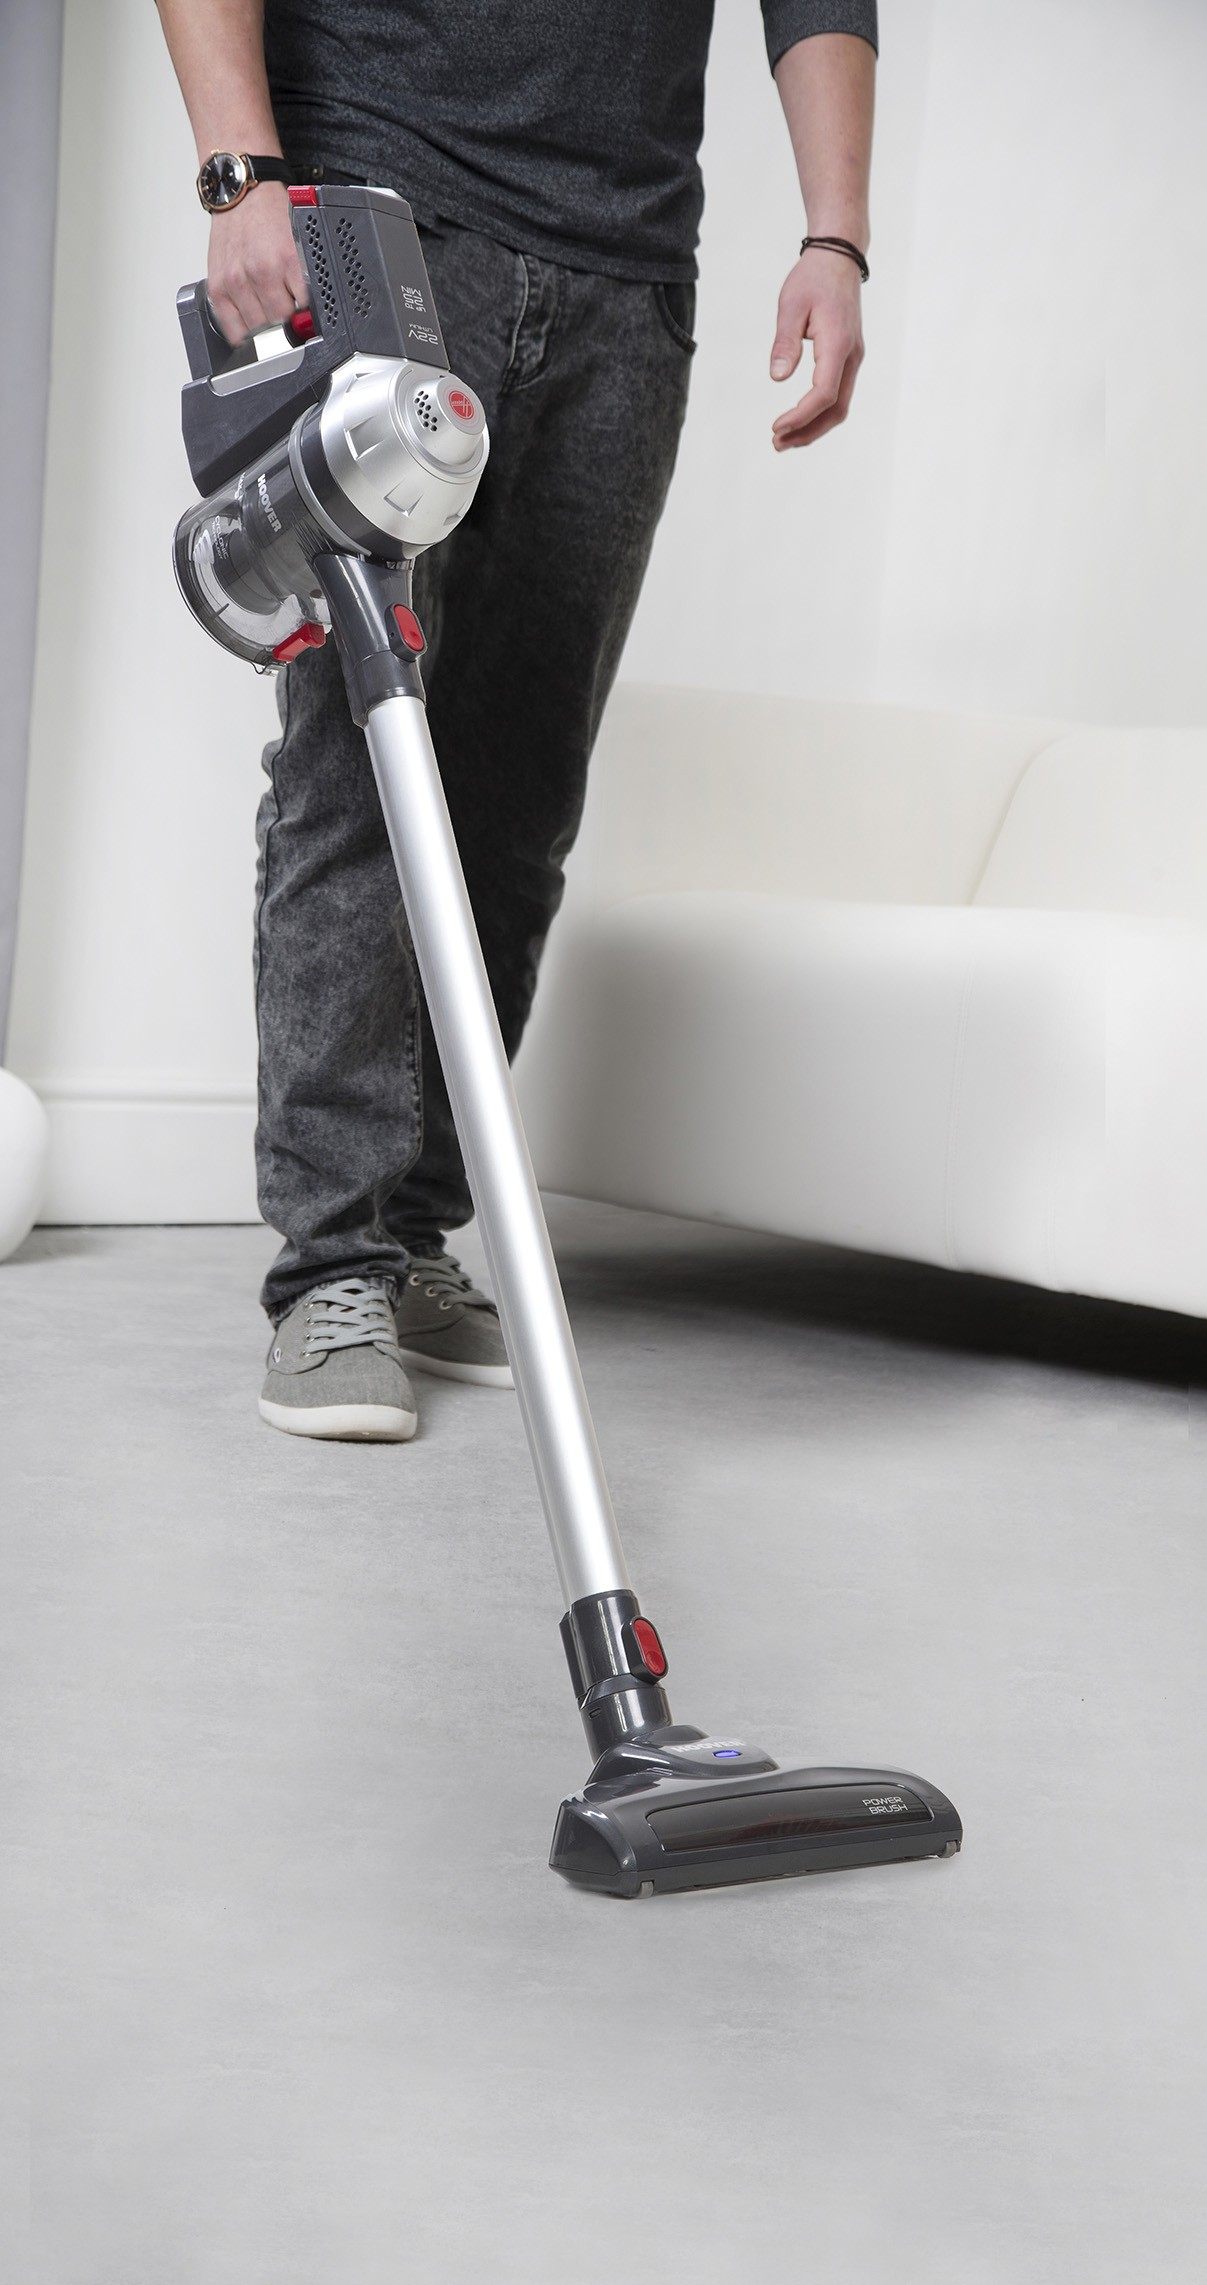 HOOVER - FD 22 G